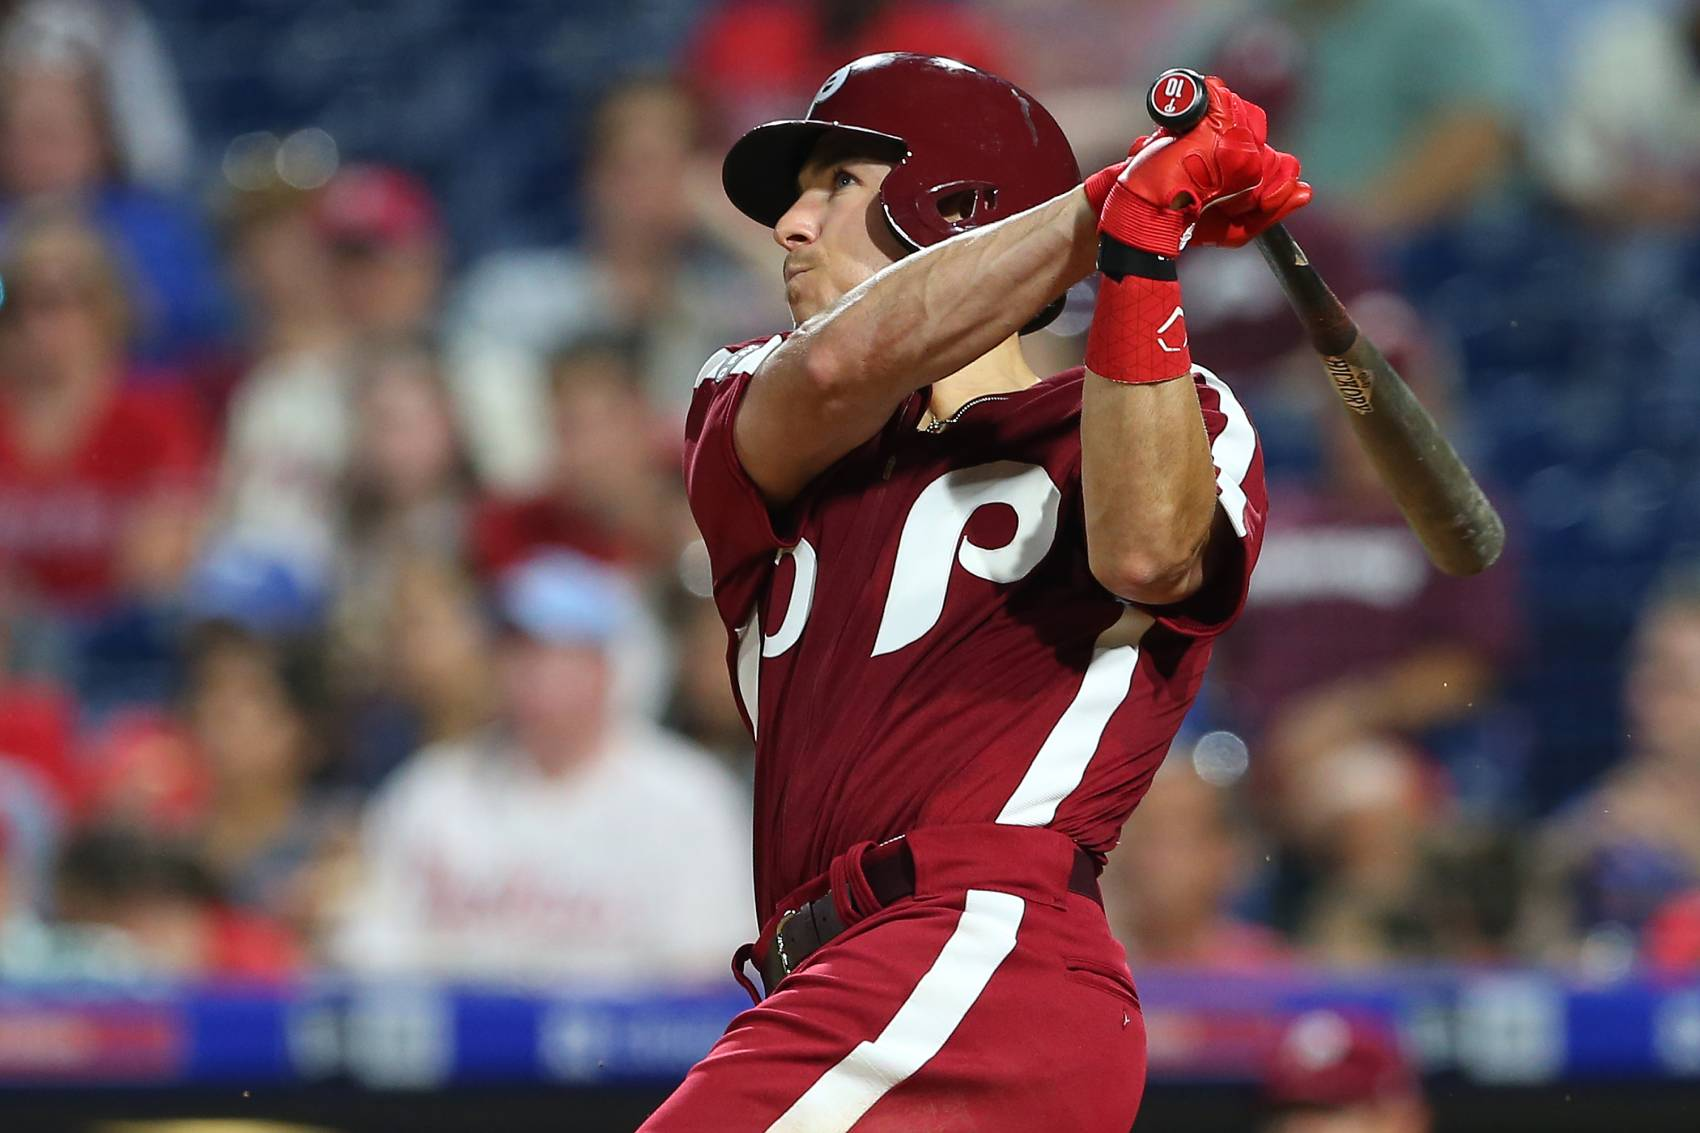 Philadelphia Phillies catcher J.T. Realmuto could lose over $100 million in free agency.